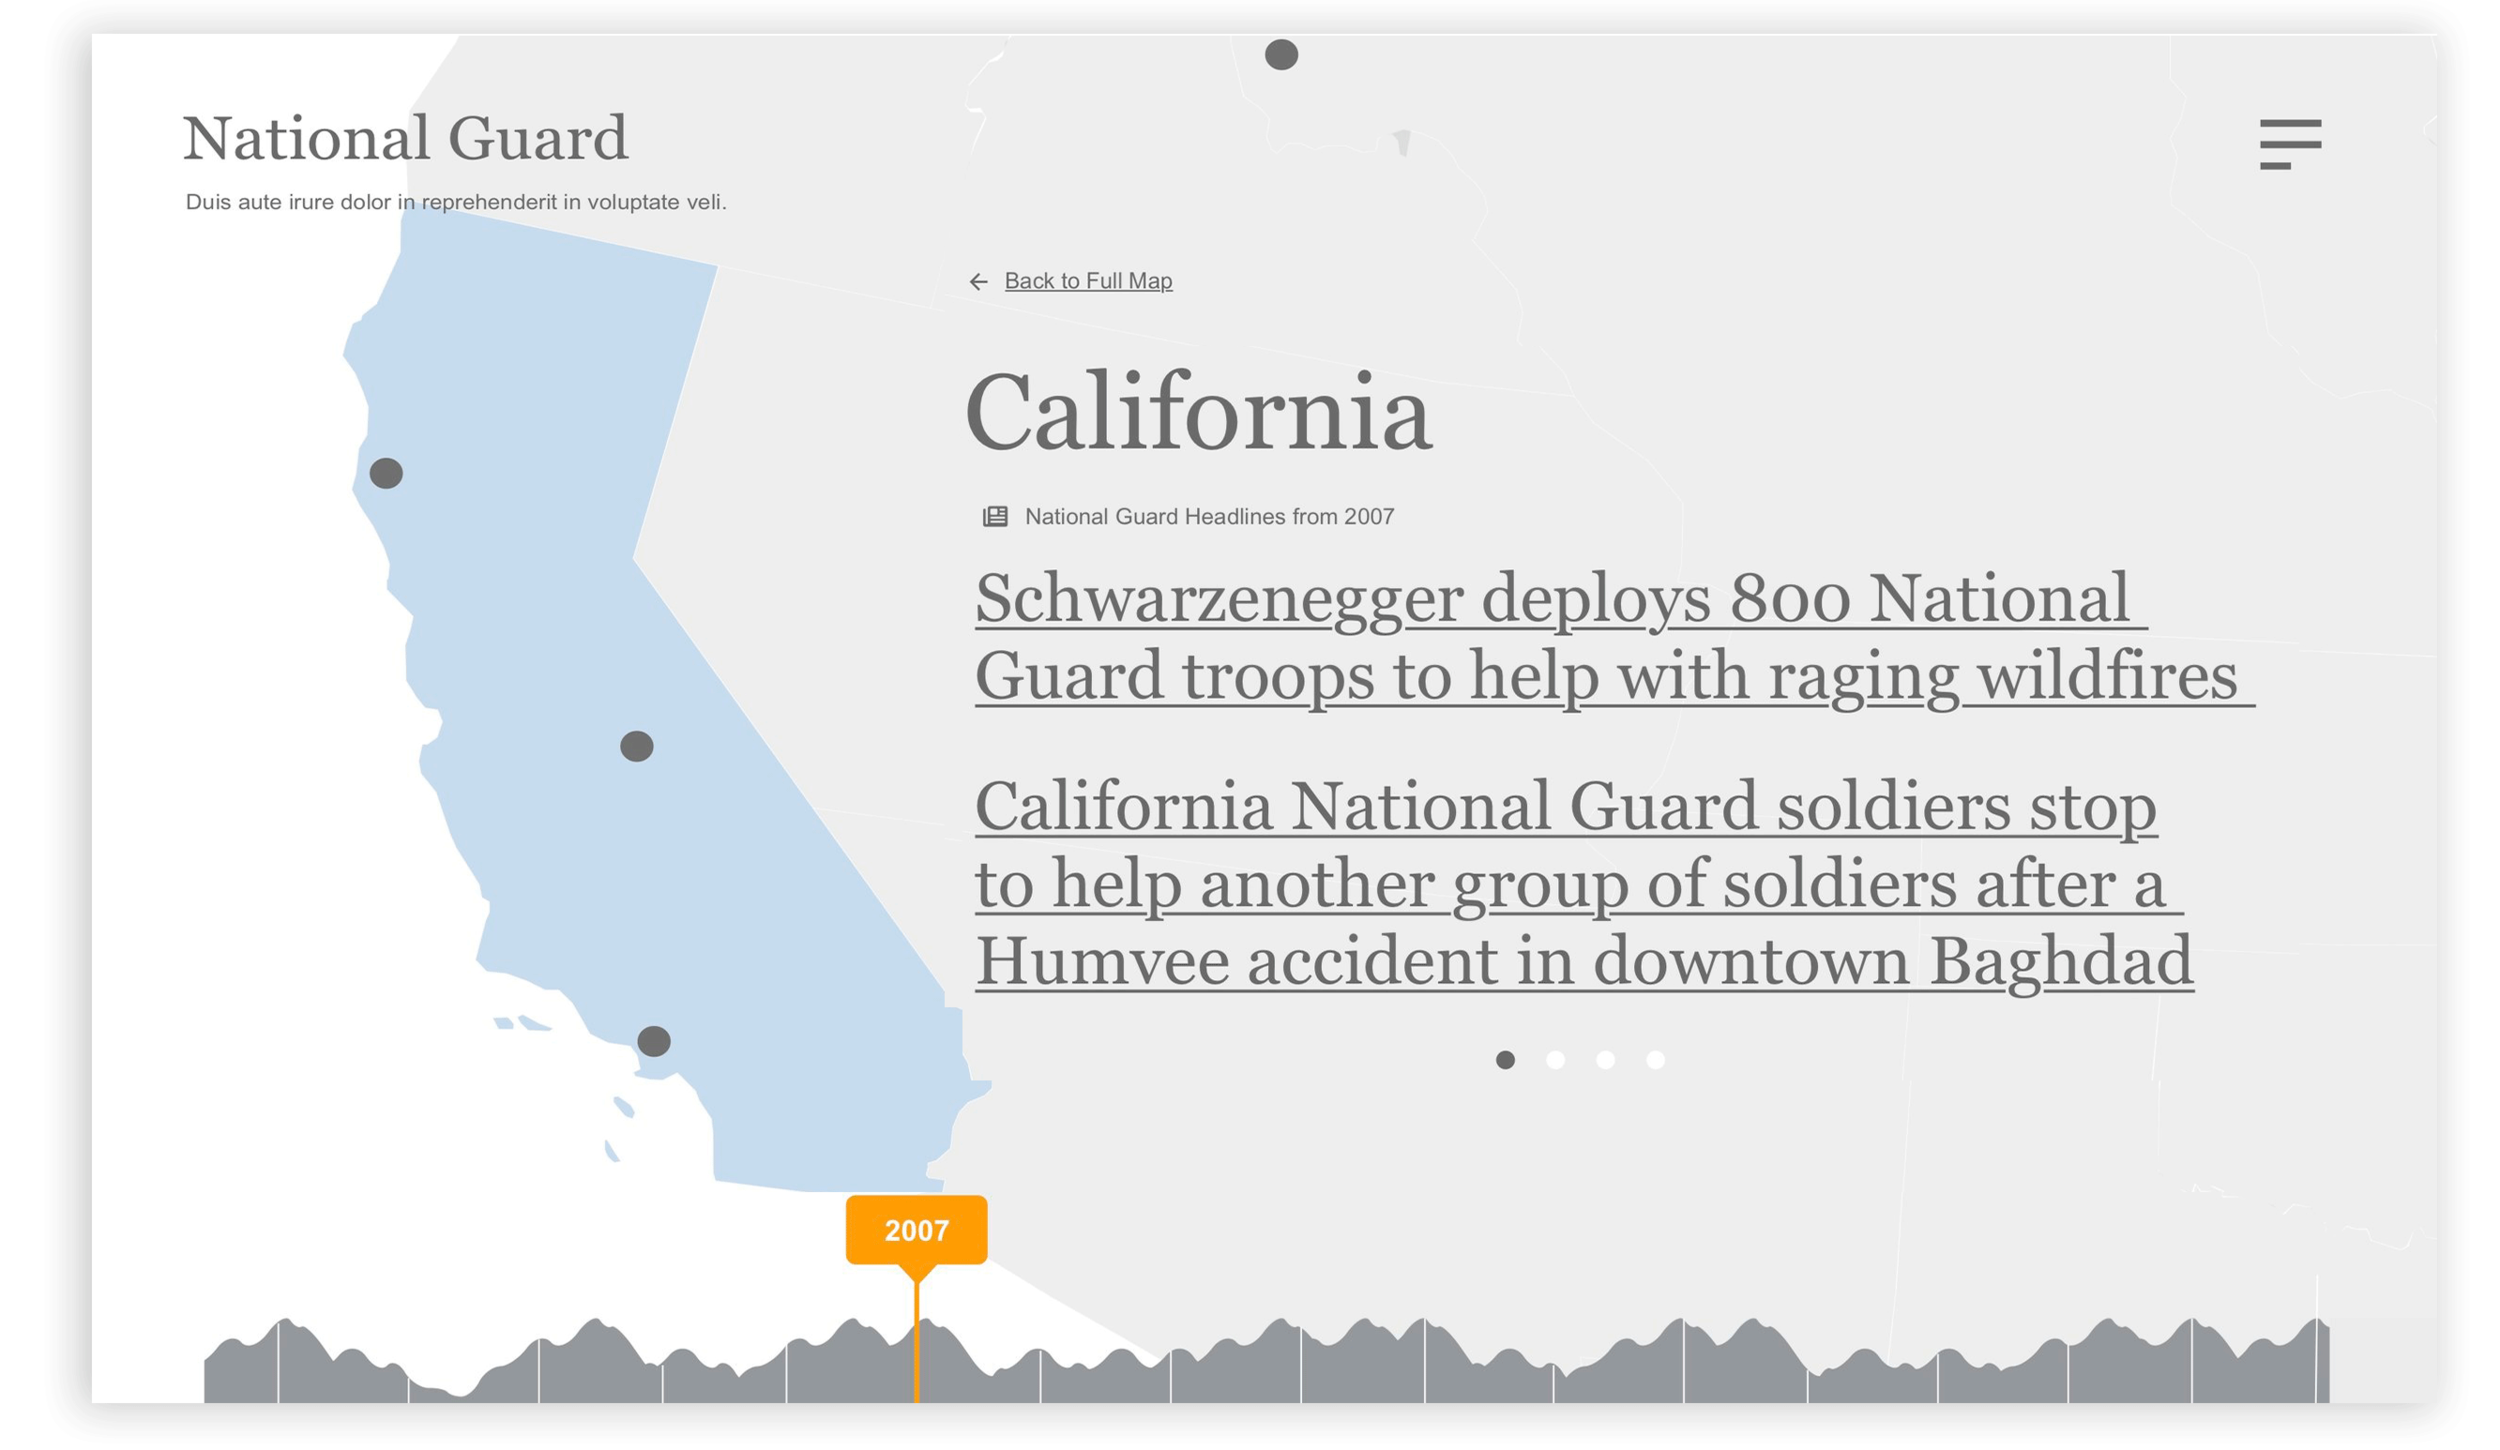 US_ARMY-NationGuard-wireframes5.png